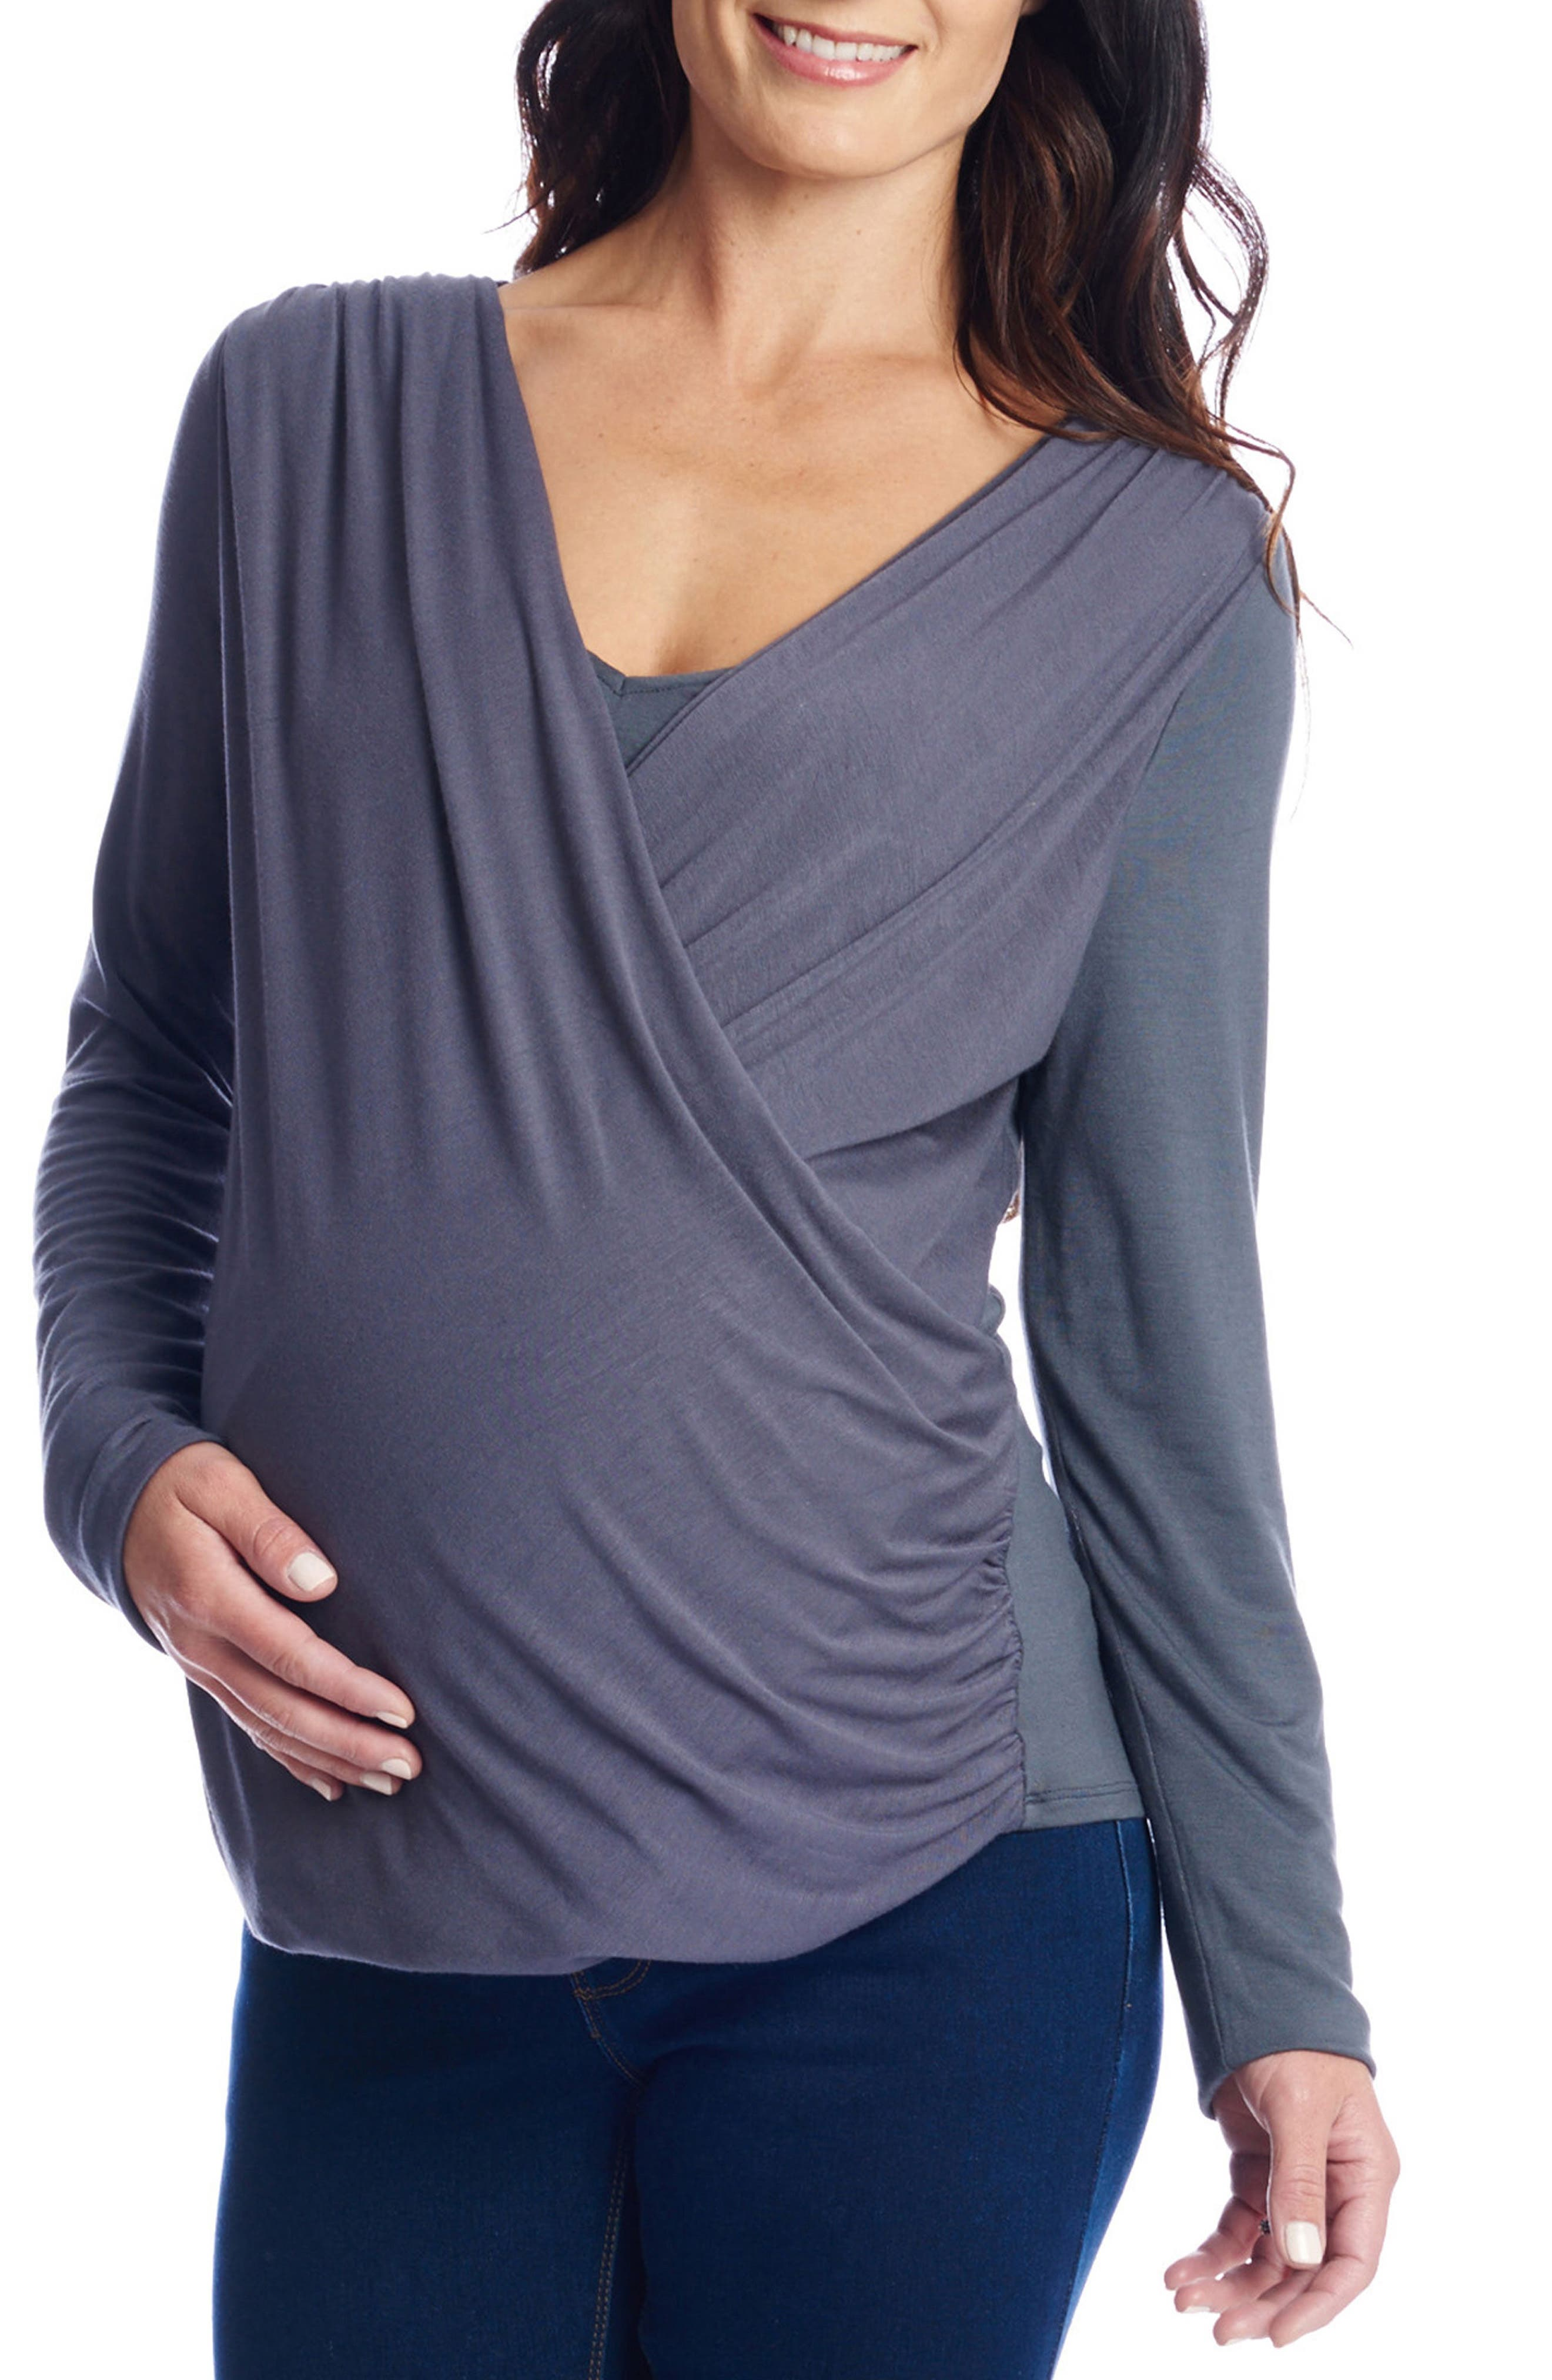 Main Image - Everly Grey Brooklyn Maternity Top